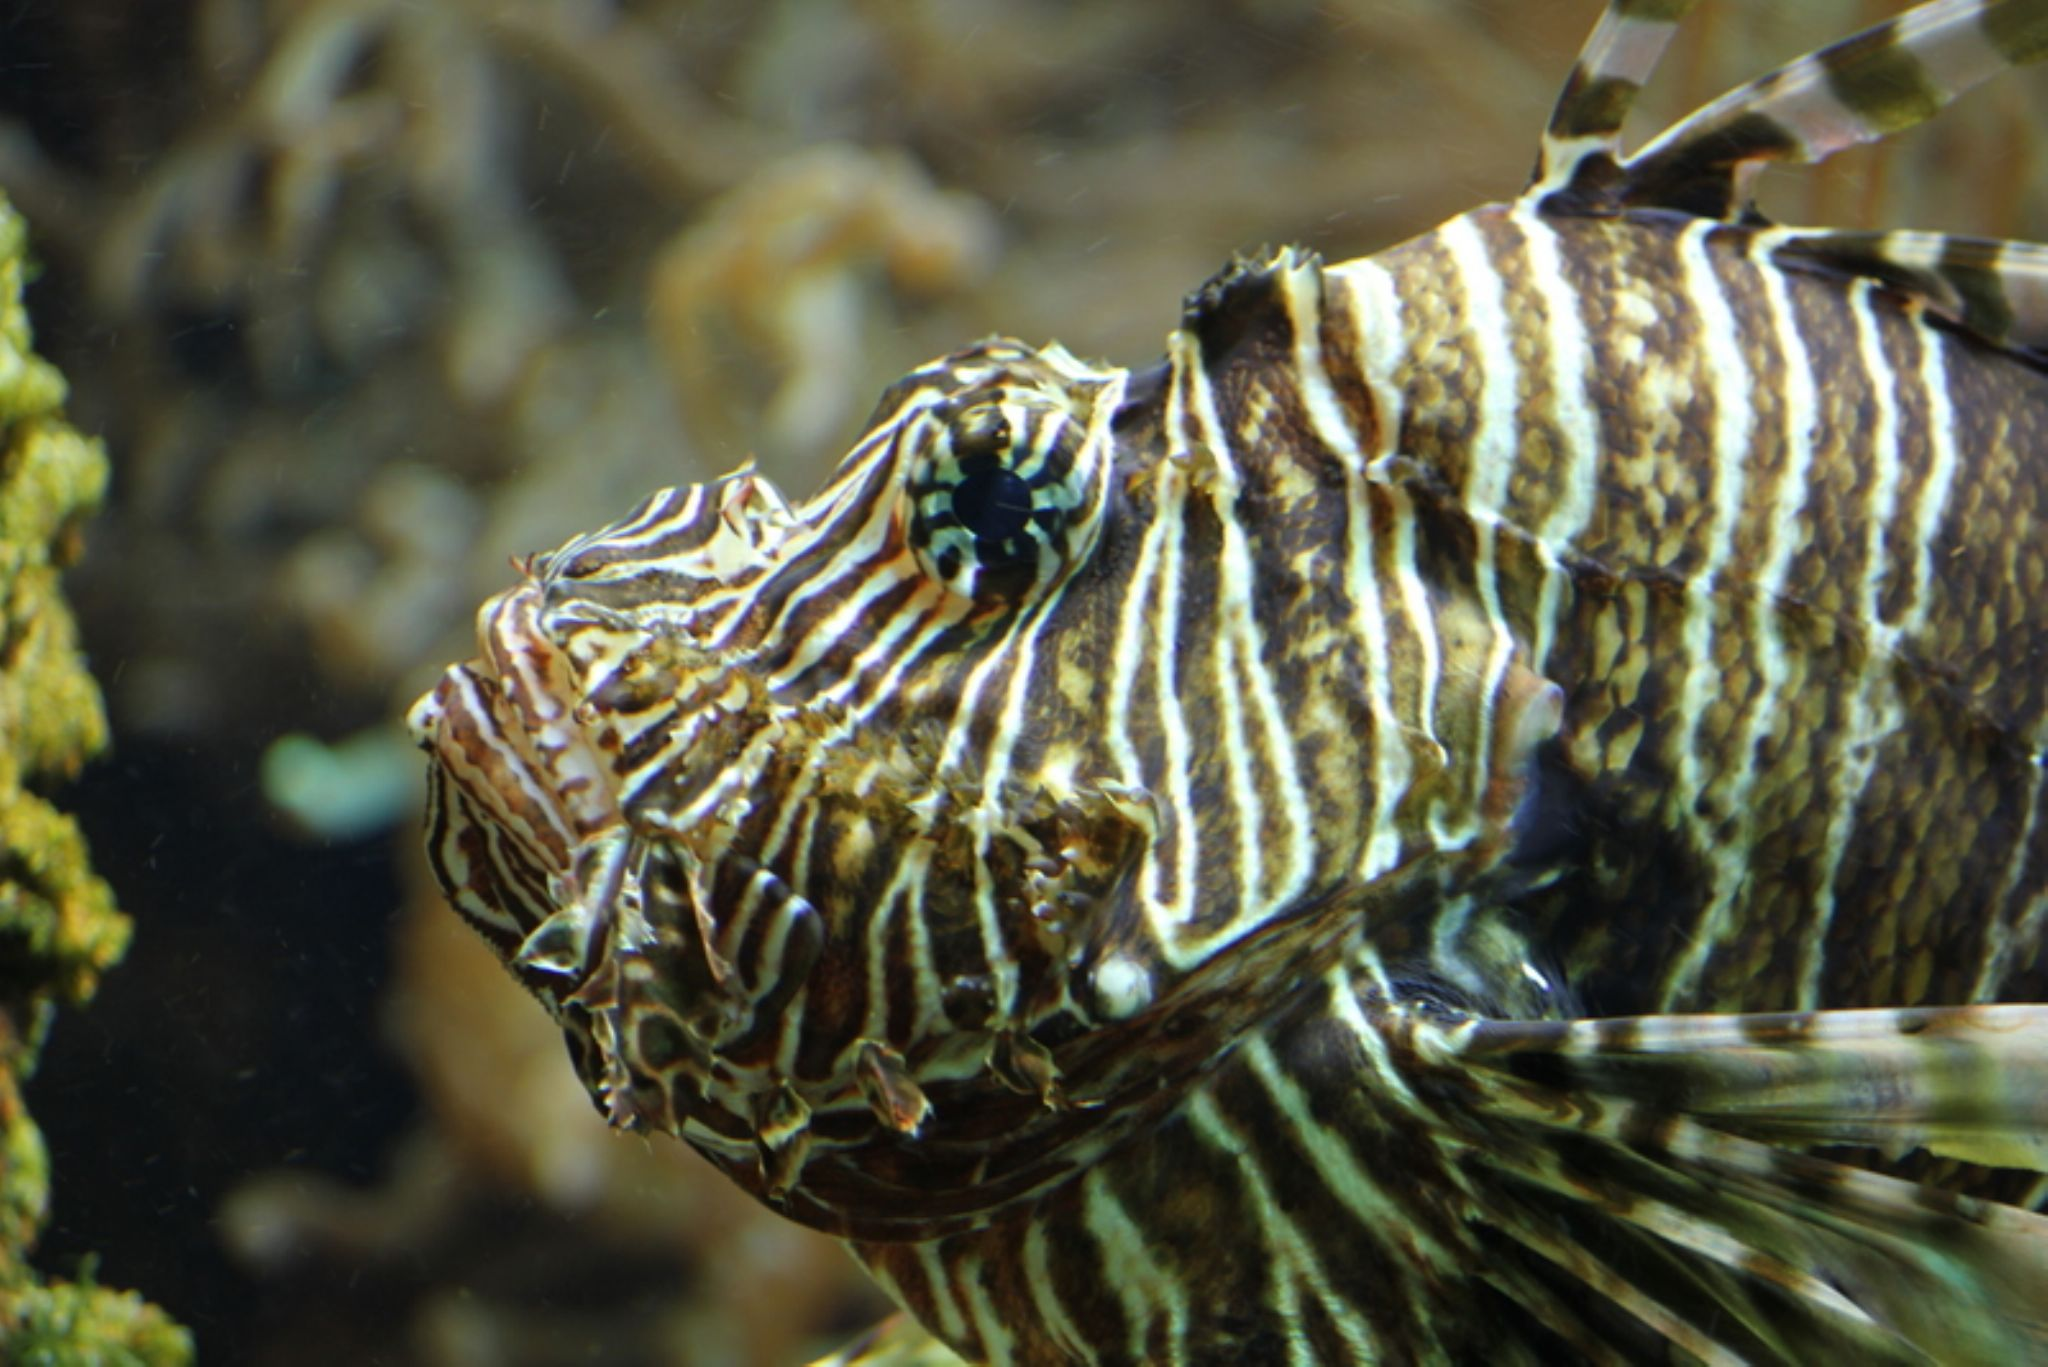 Angry Fish by Henry Geerling